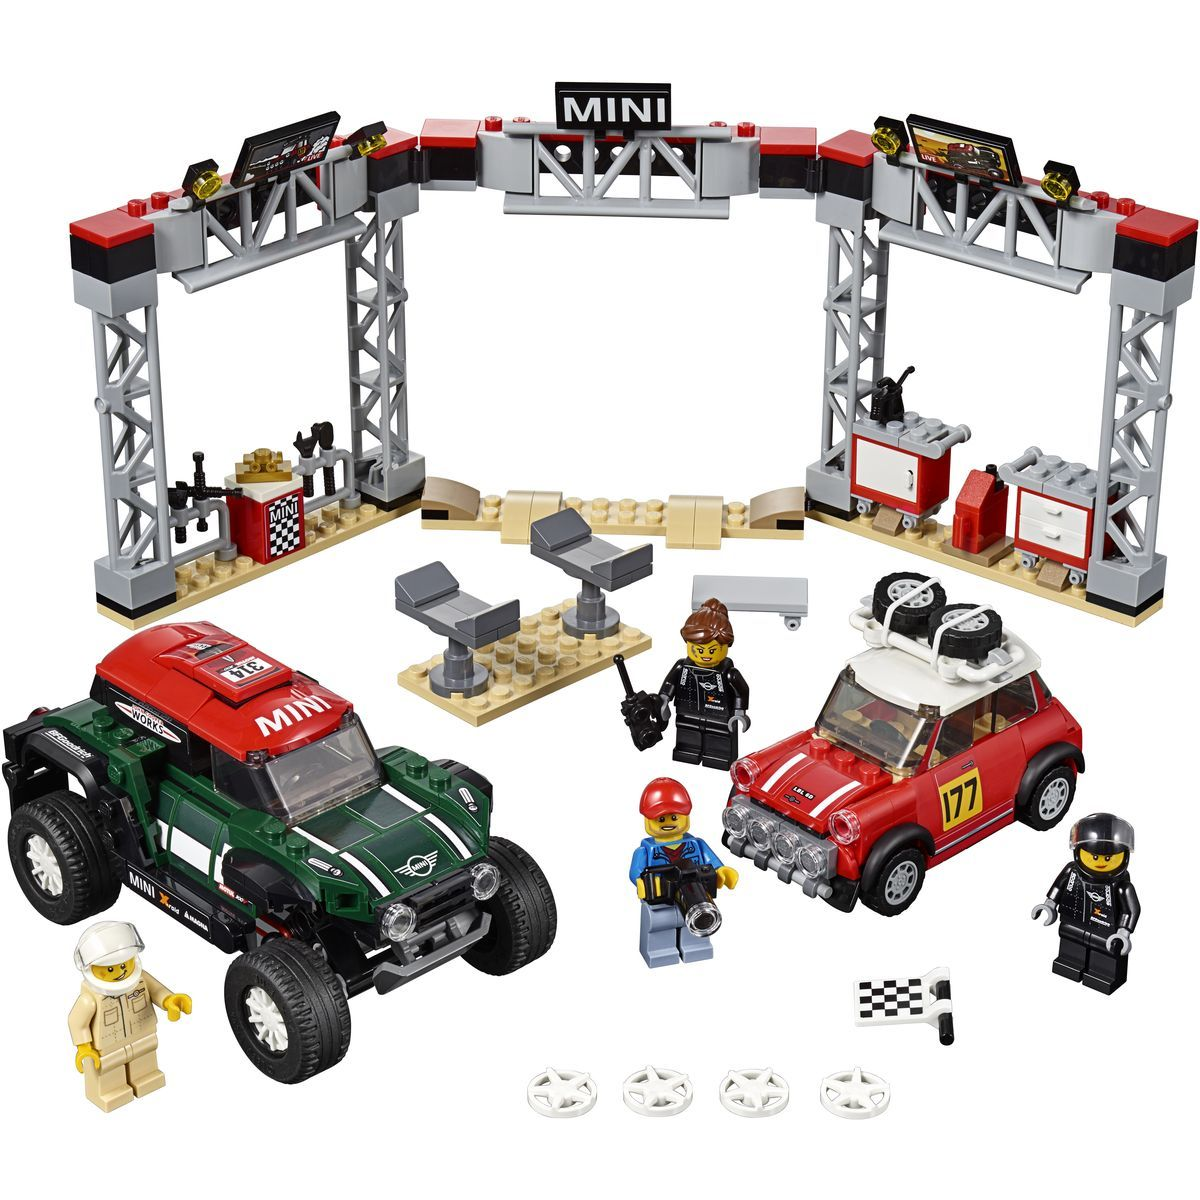 LEGO Speed Champions 75894 1967 Mini Cooper S Rally a 2018 MINI Jo